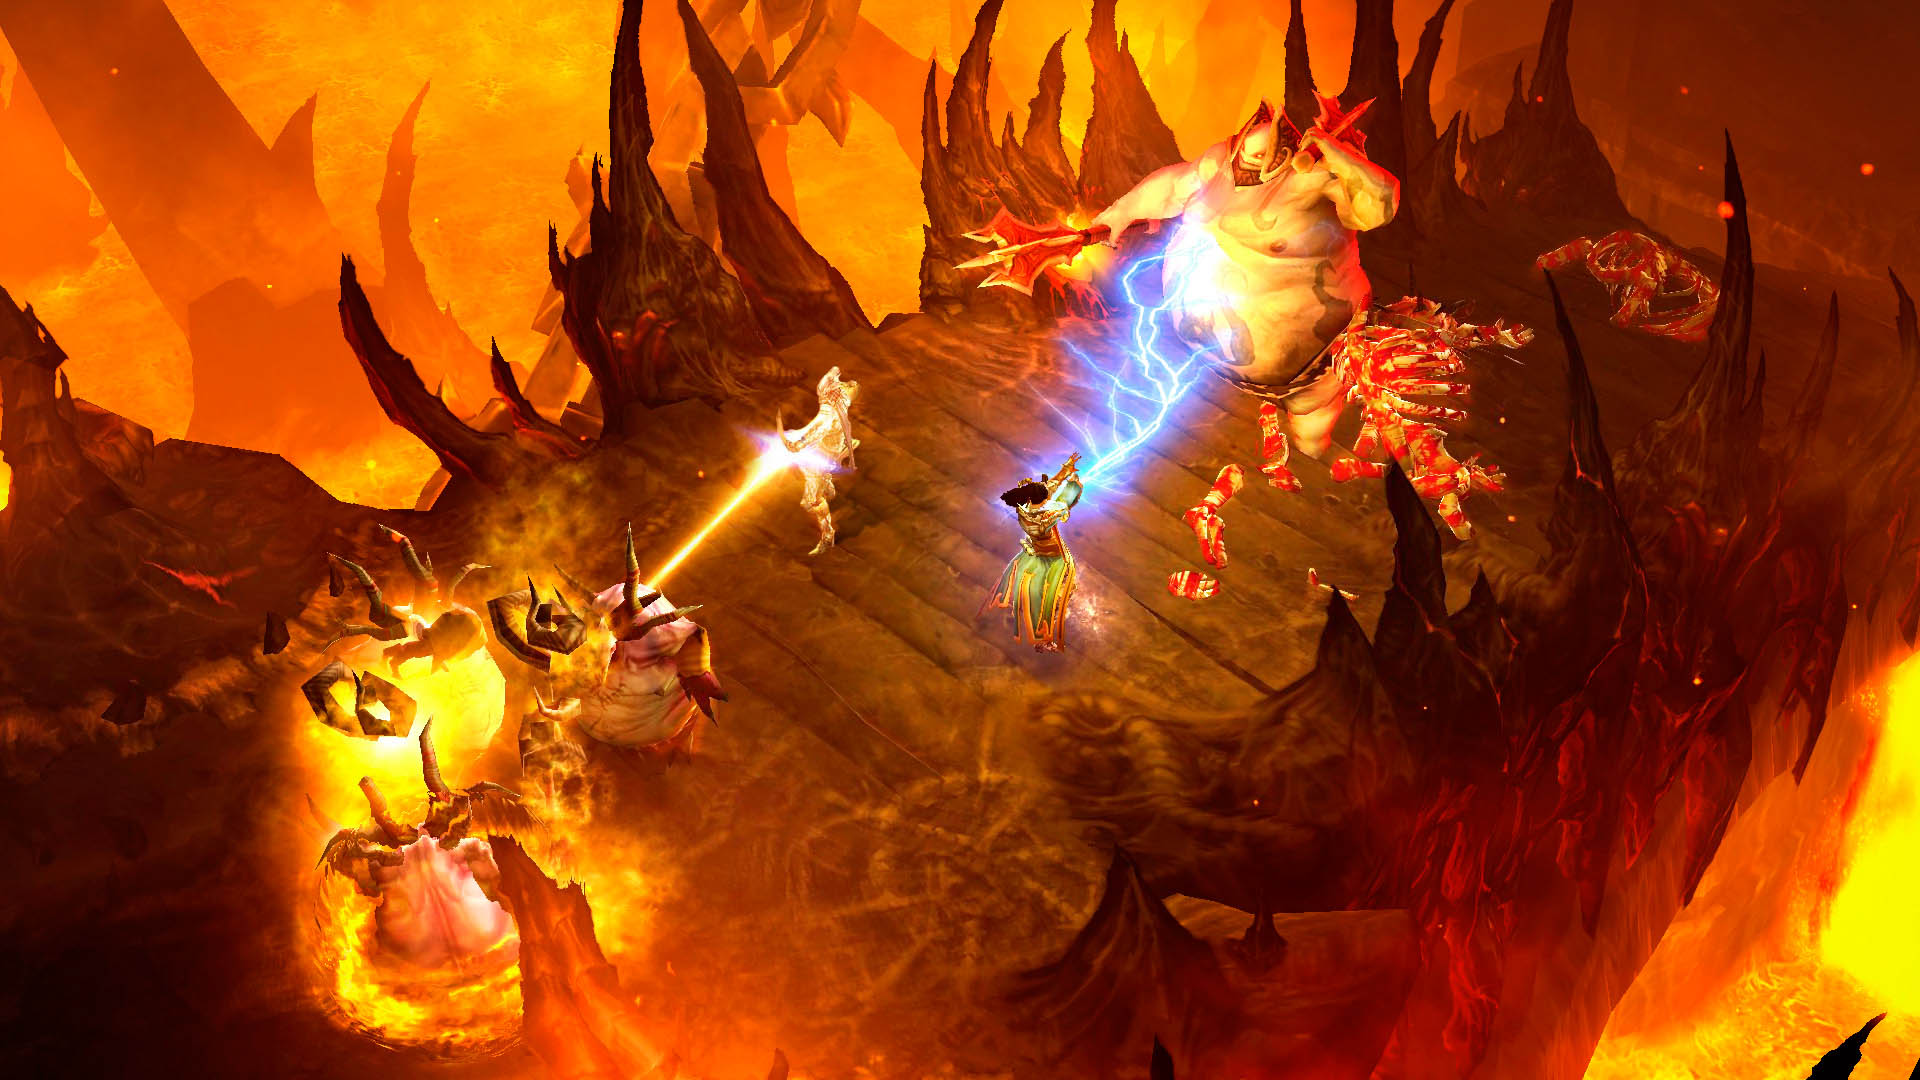 Blizzard's hiring for an unannounced Diablo project screenshot